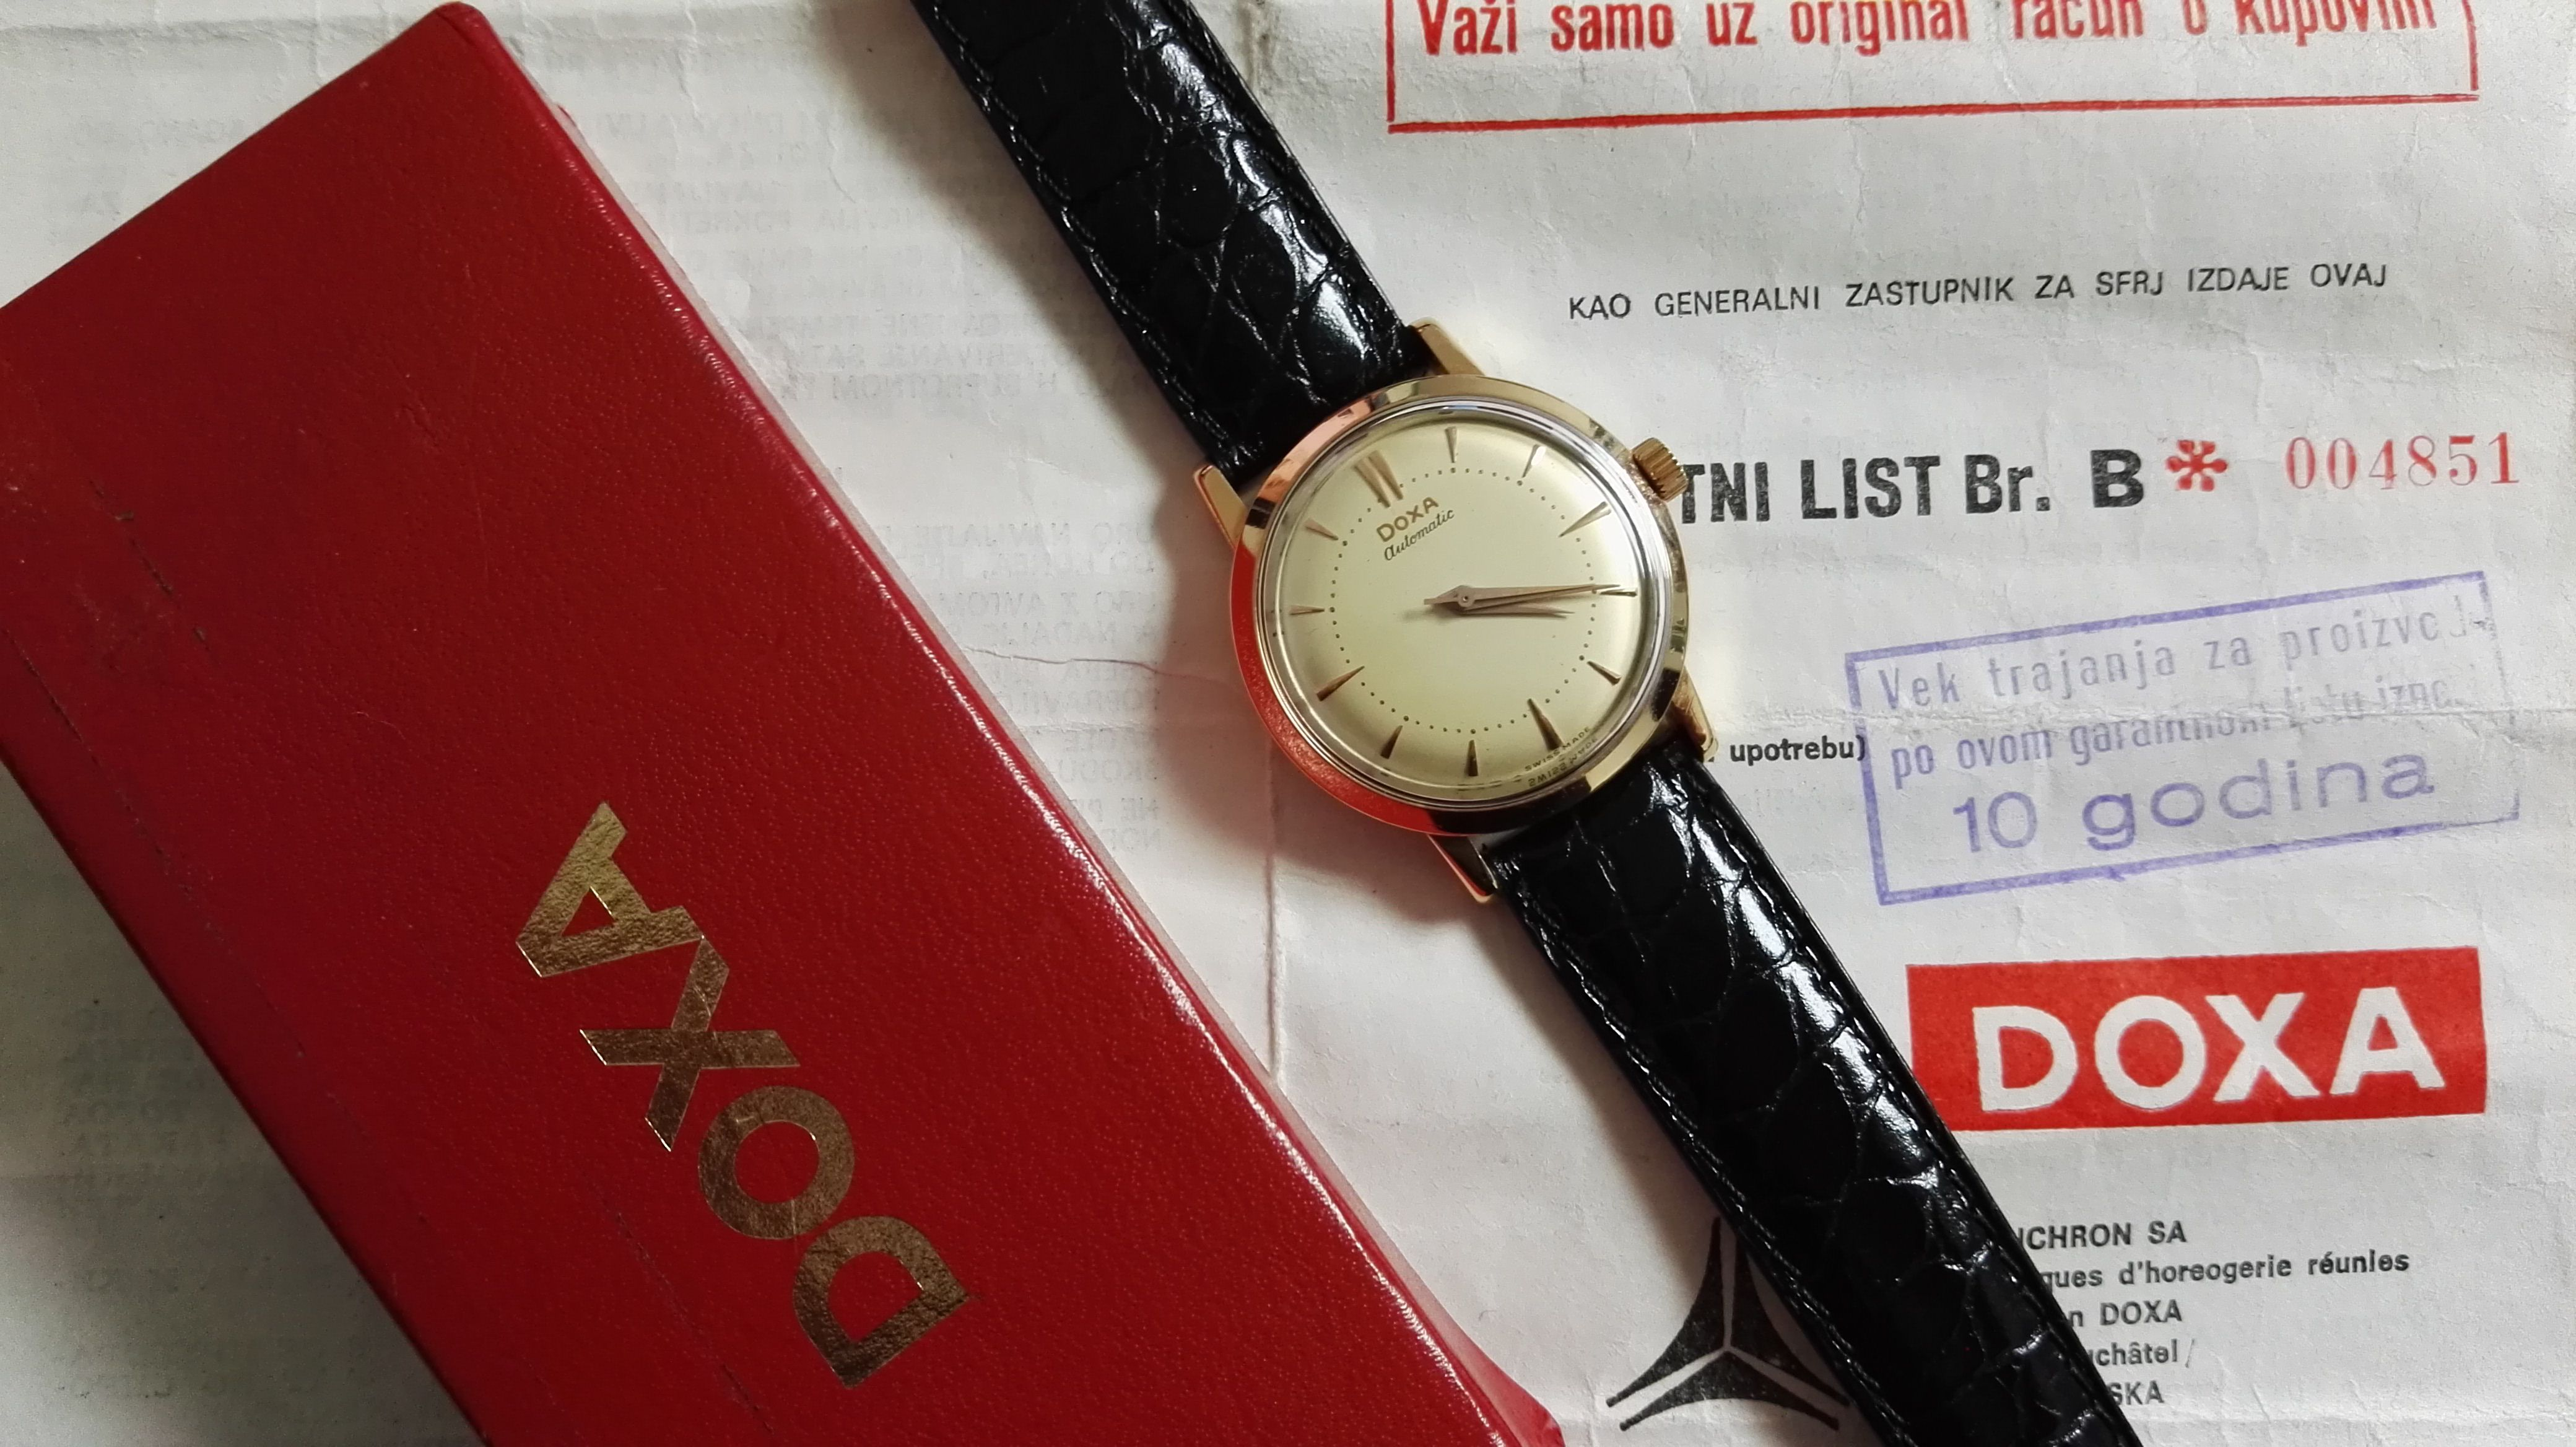 Doxa red gold 18 kt mm 34 autmatic movement fullset 78' very nice | San Giorgio a Cremano